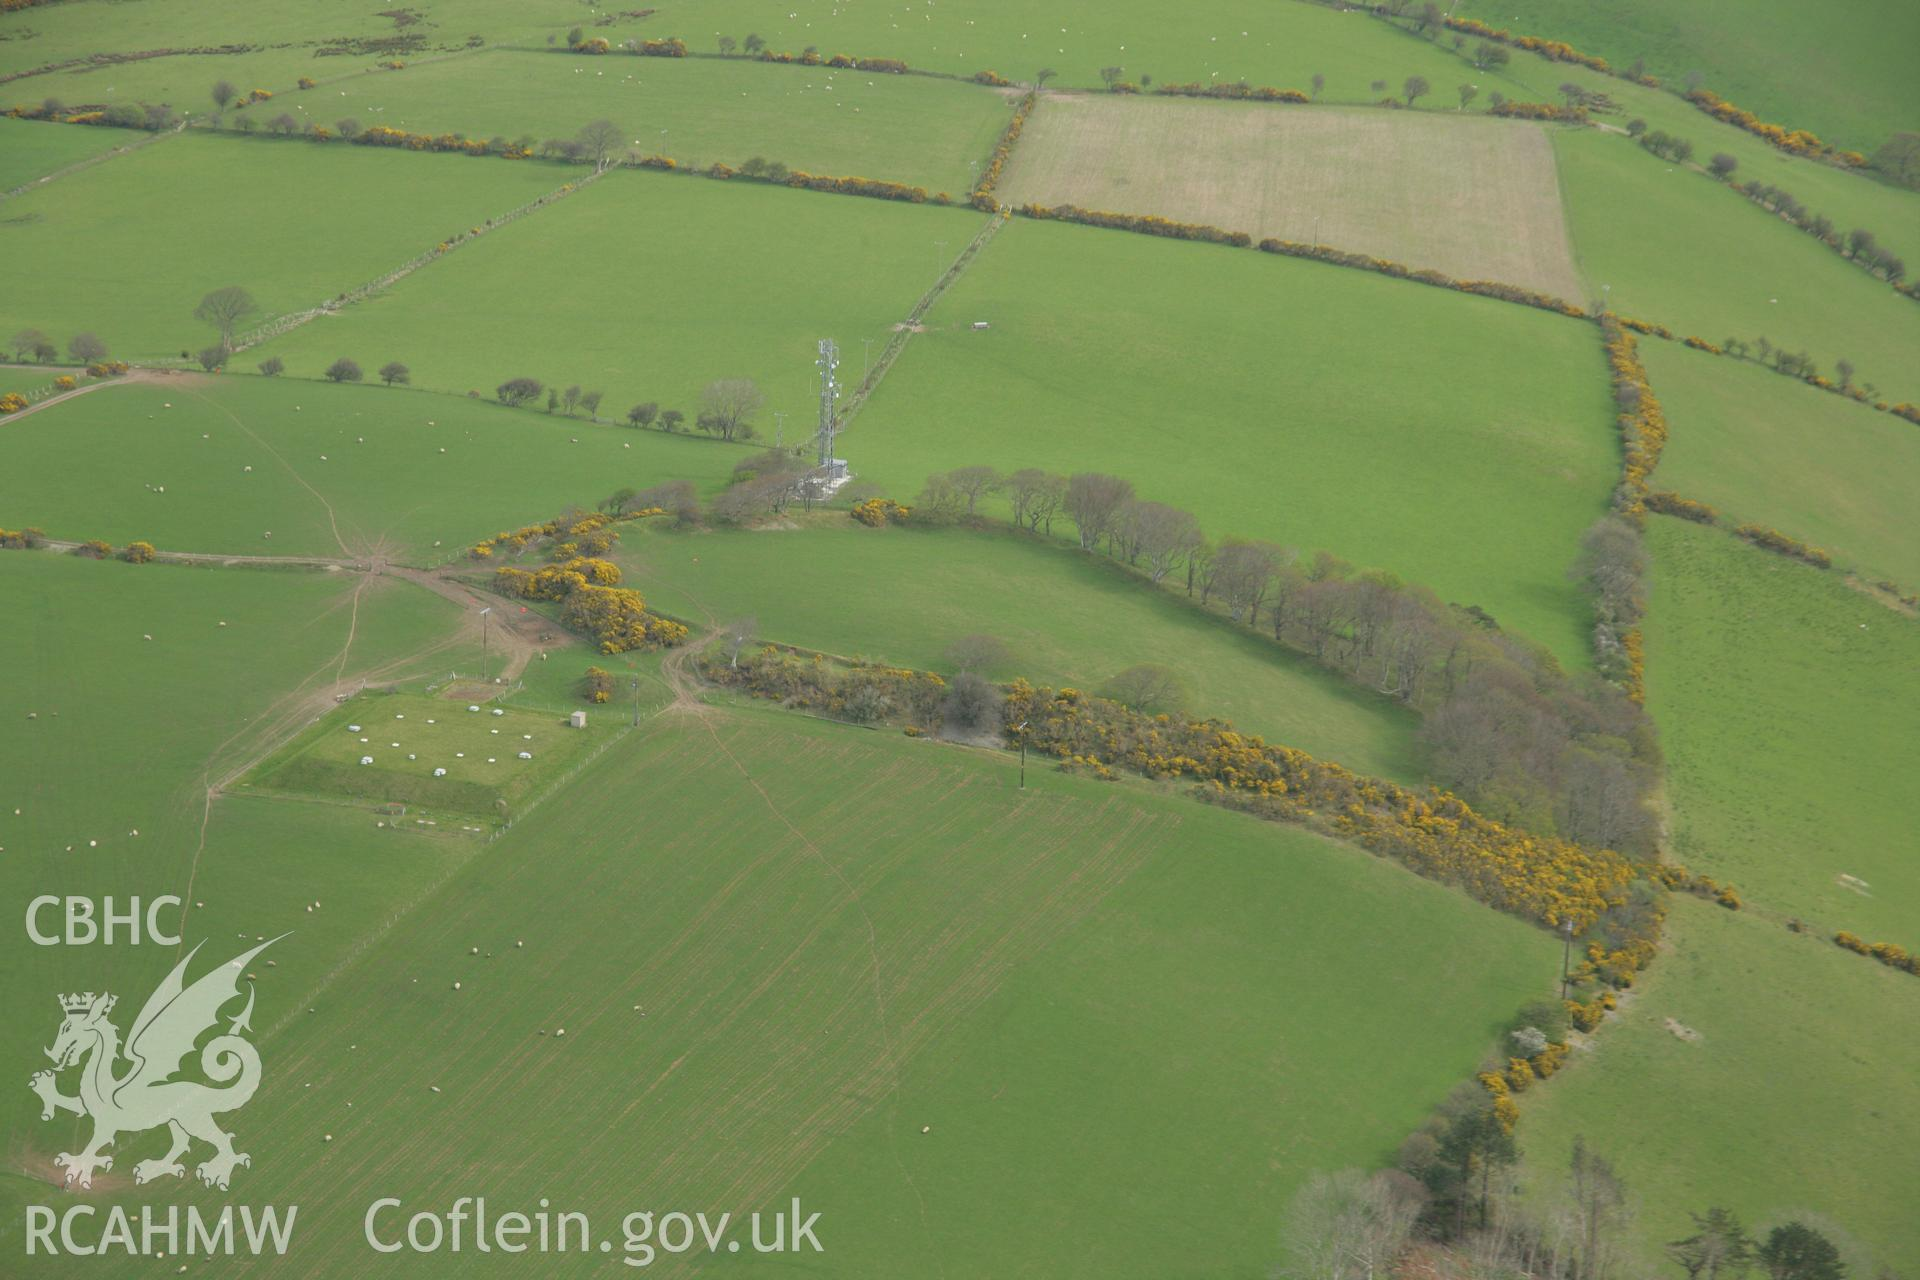 RCAHMW colour oblique aerial photograph of Hilltop Enclosure at Hen Gaer. Taken on 17 April 2007 by Toby Driver